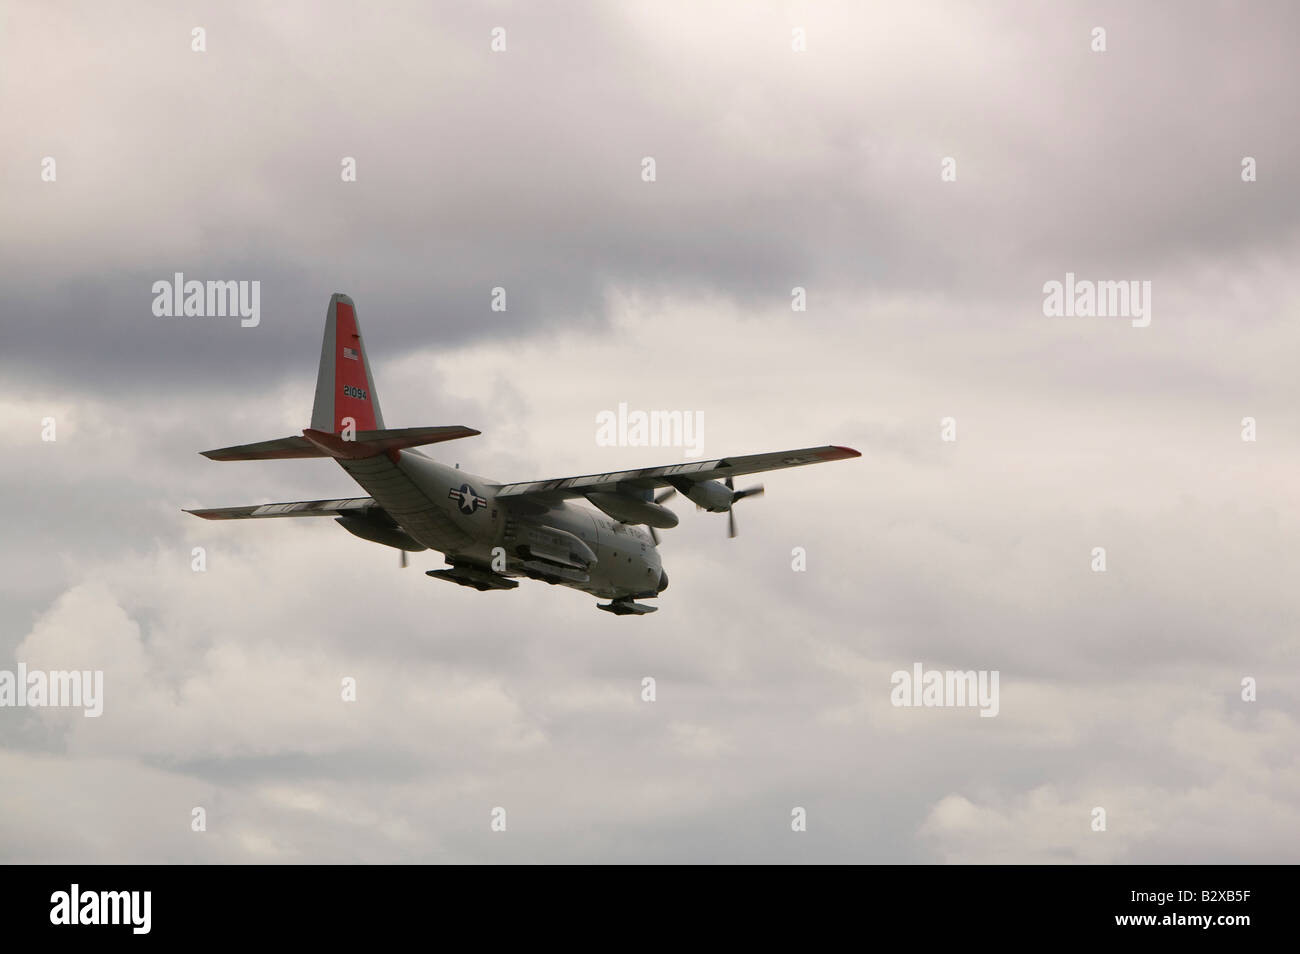 An American Air Force flight at Kangerlussuaq Airport on Greenland after a resupply flight to science base on summit - Stock Image